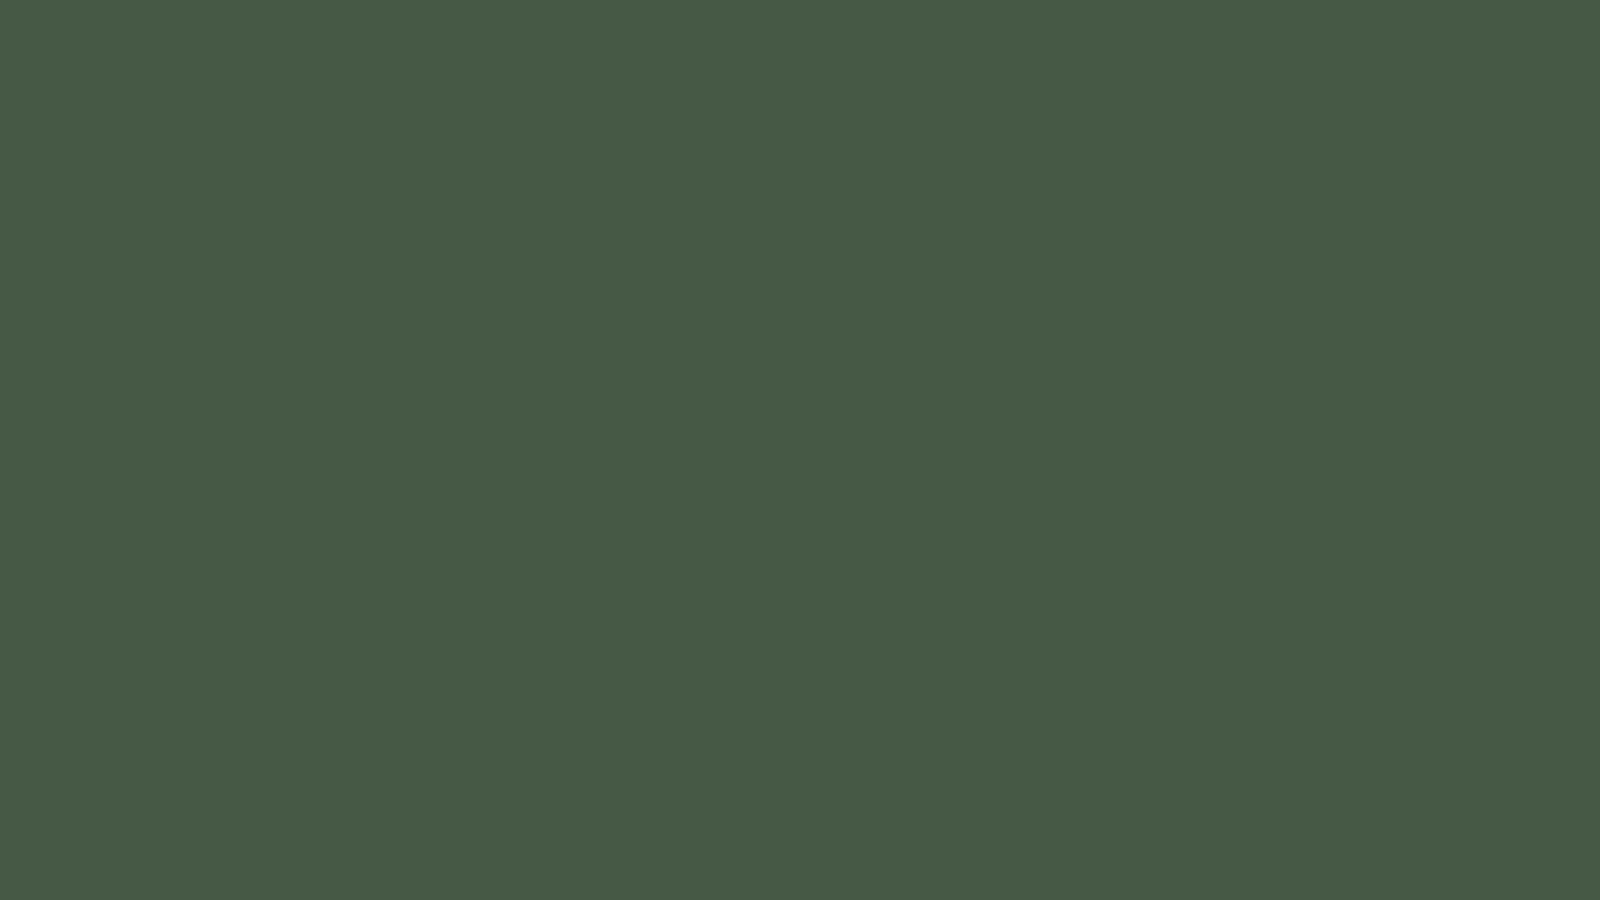 1600x900 Gray-asparagus Solid Color Background